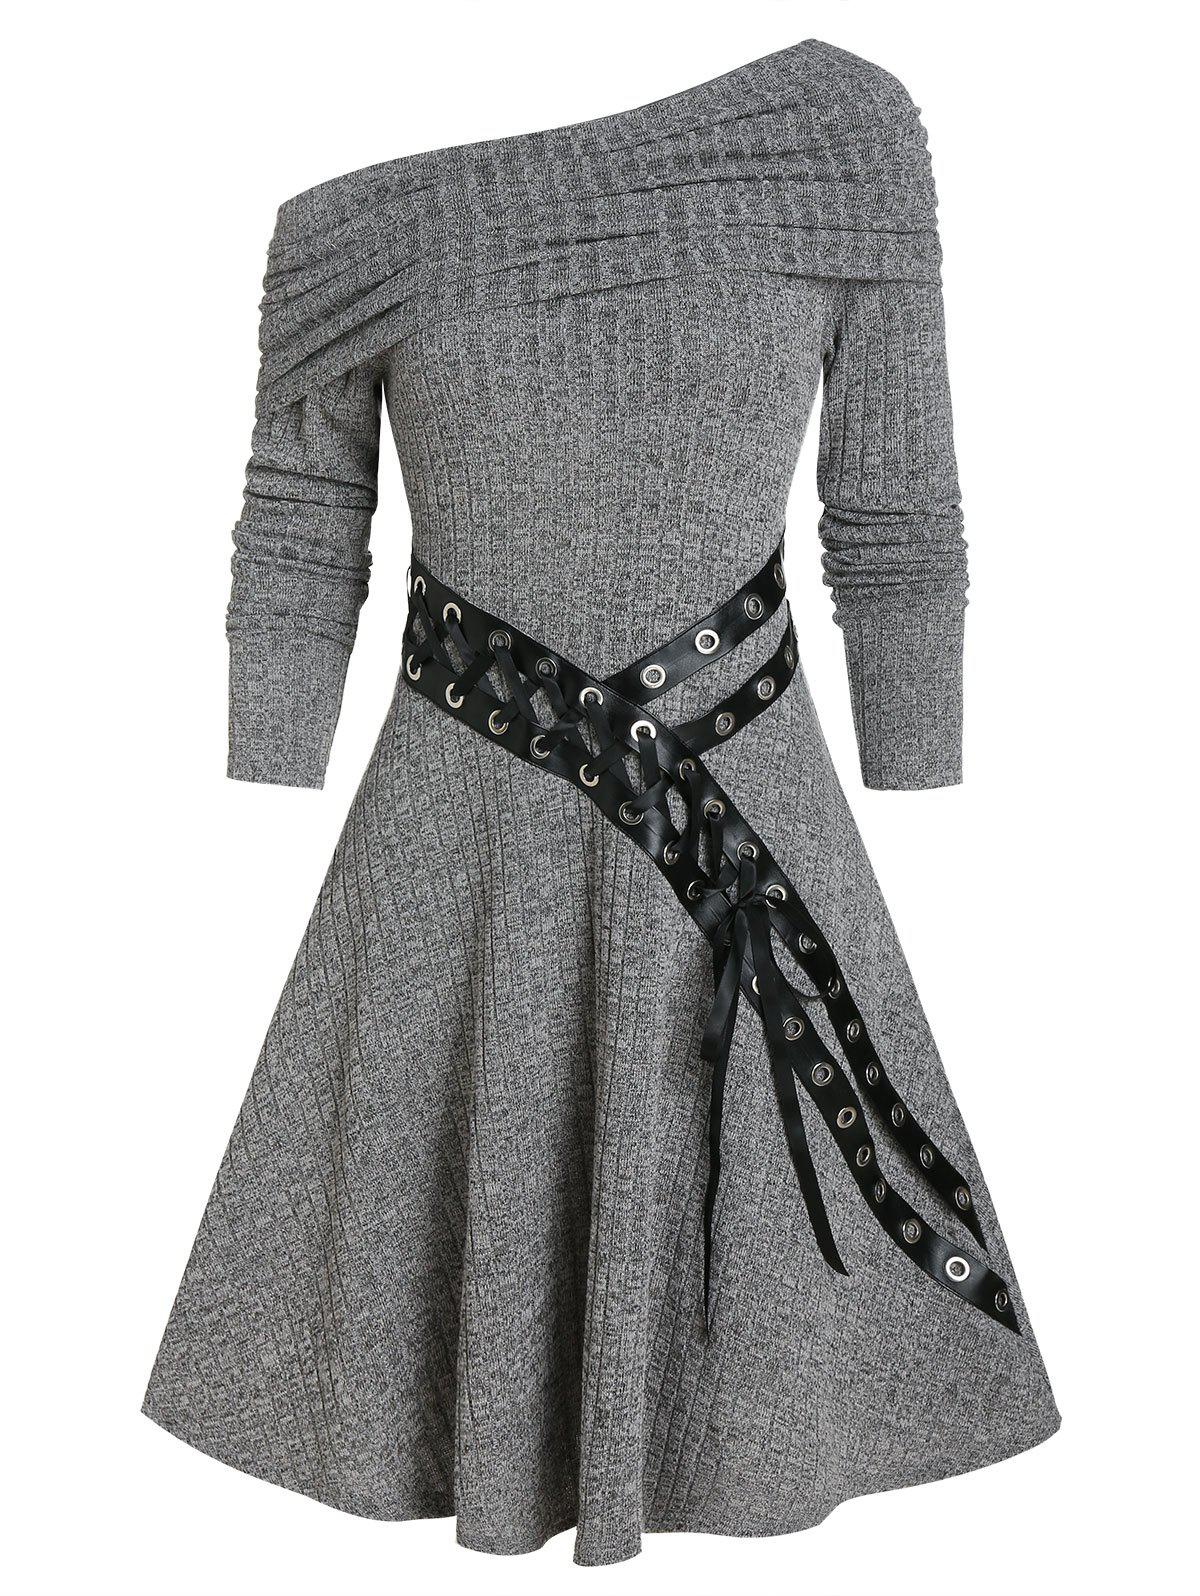 One Shoulder Belted Knitted A Line Dress - DARK GRAY 2XL